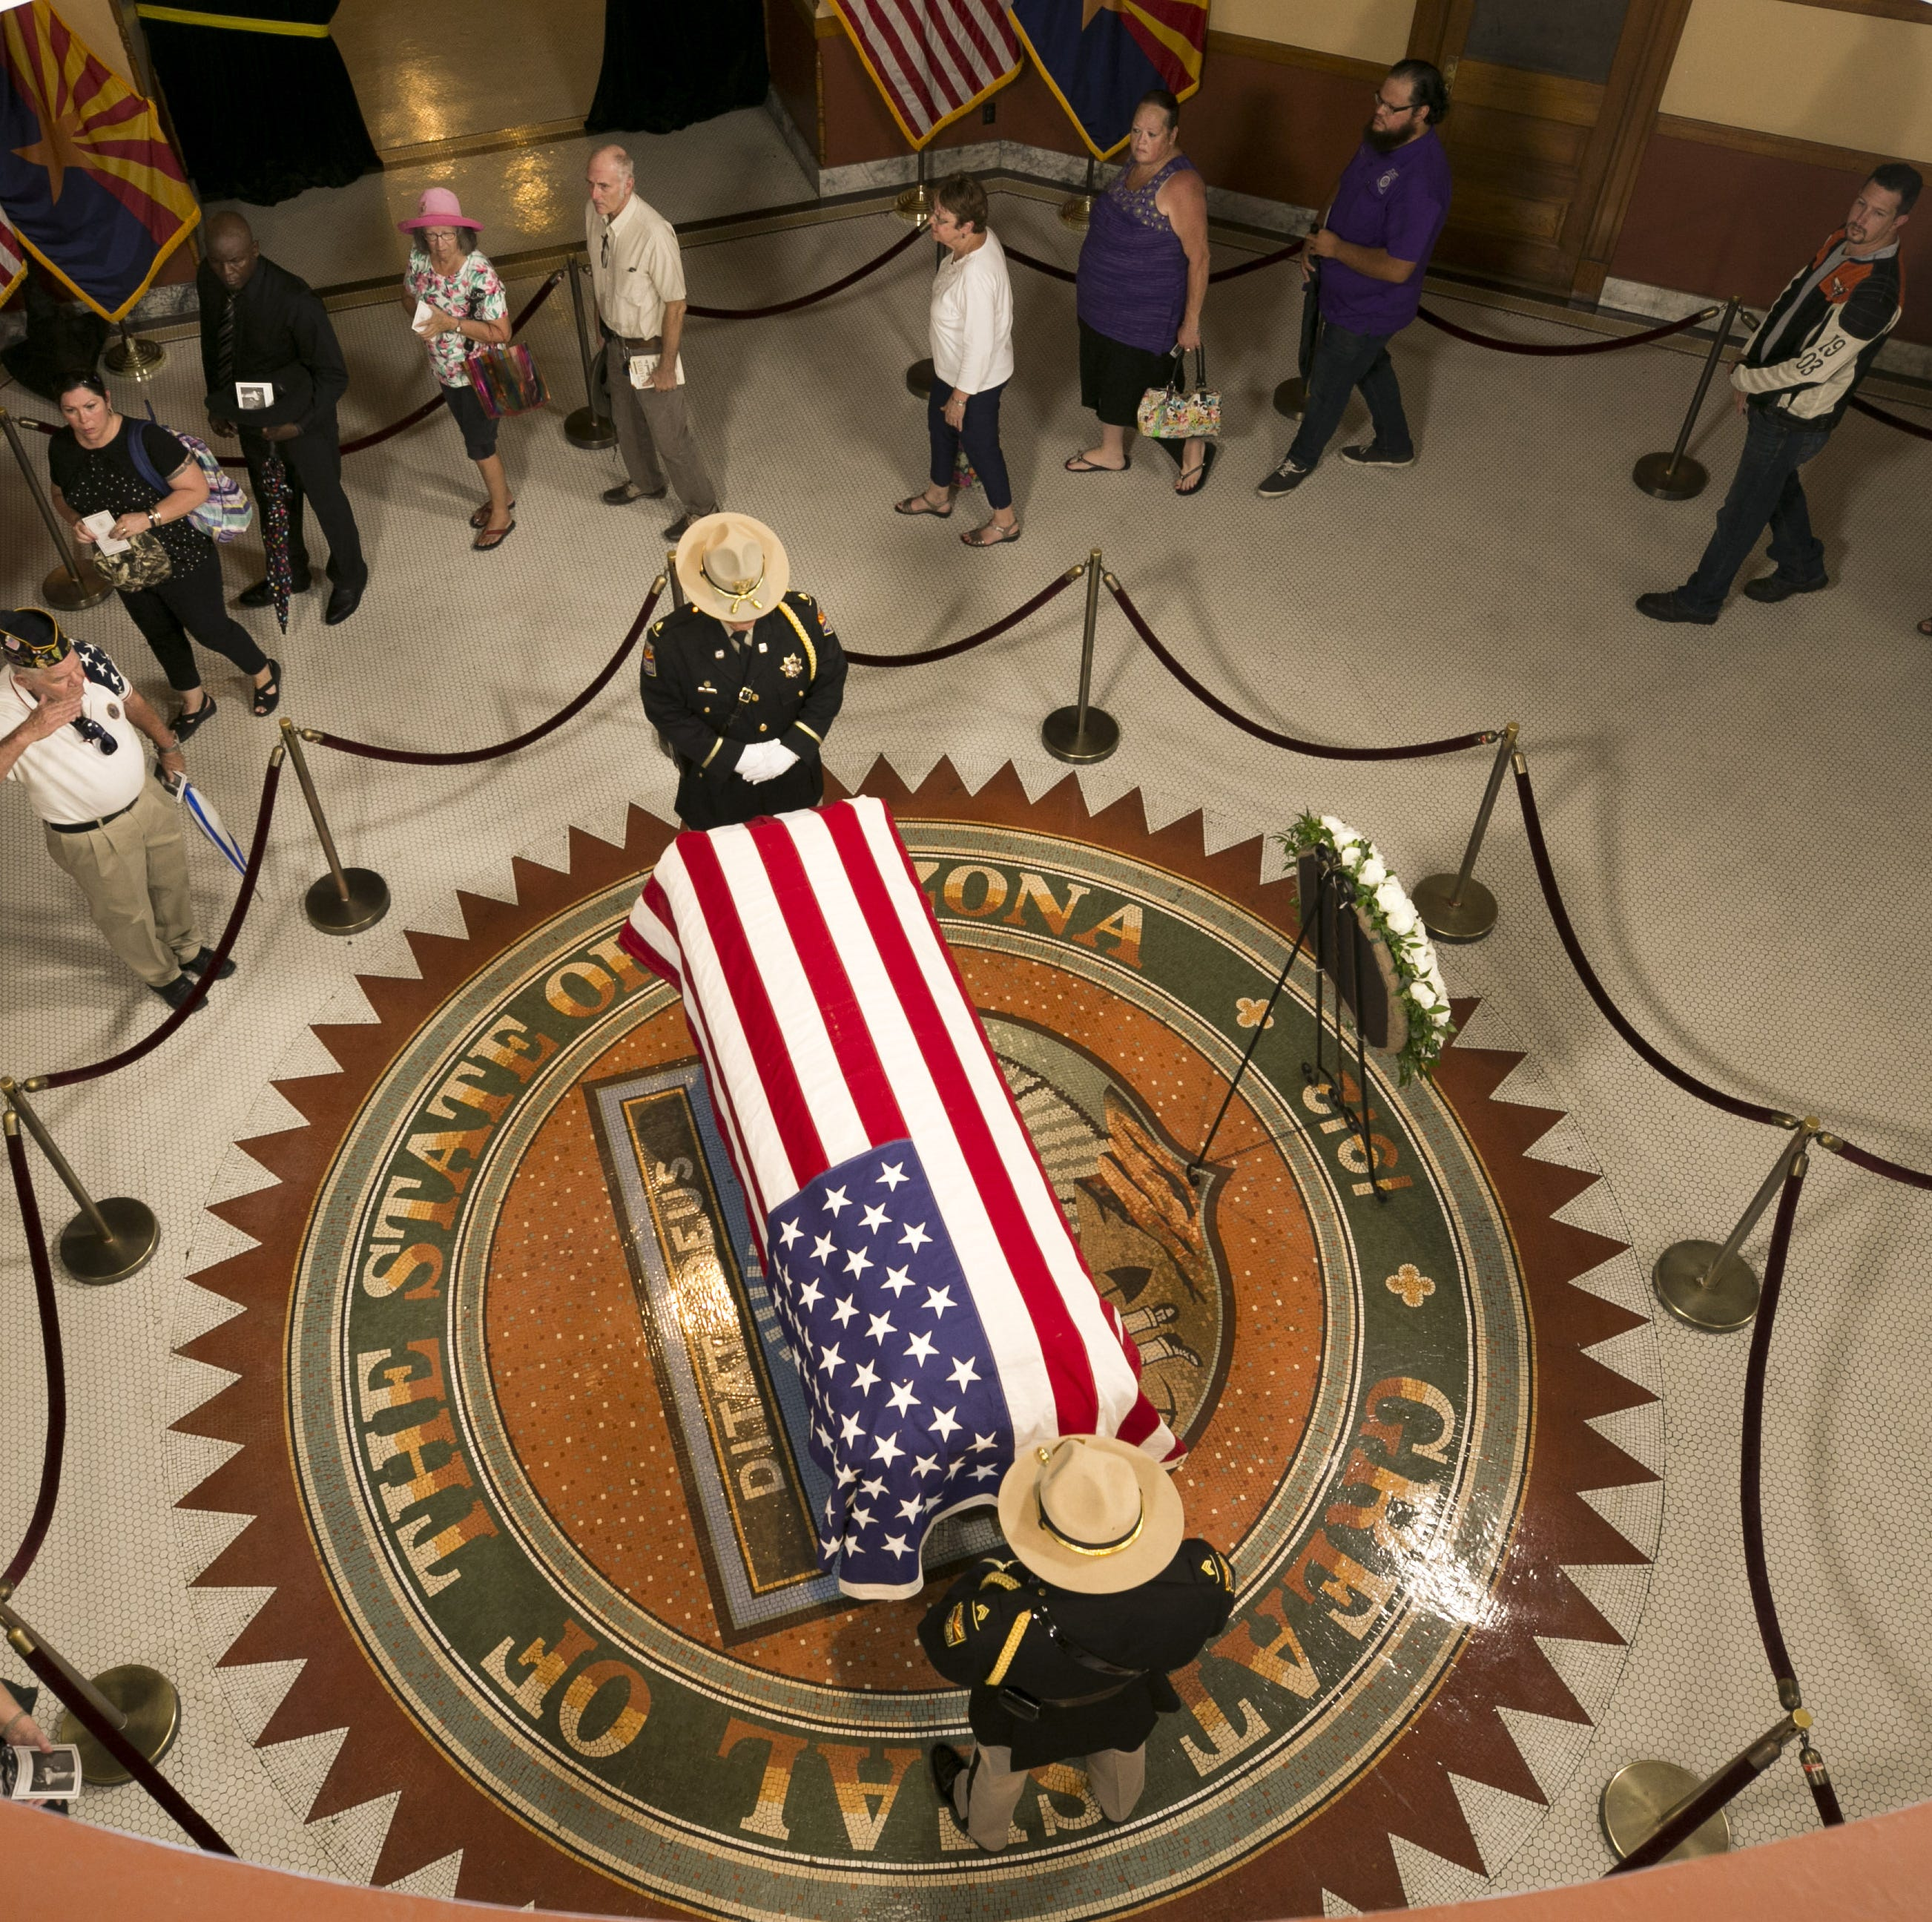 John McCain memorials in Washington, D.C.: 'I want to be there for his send-off'